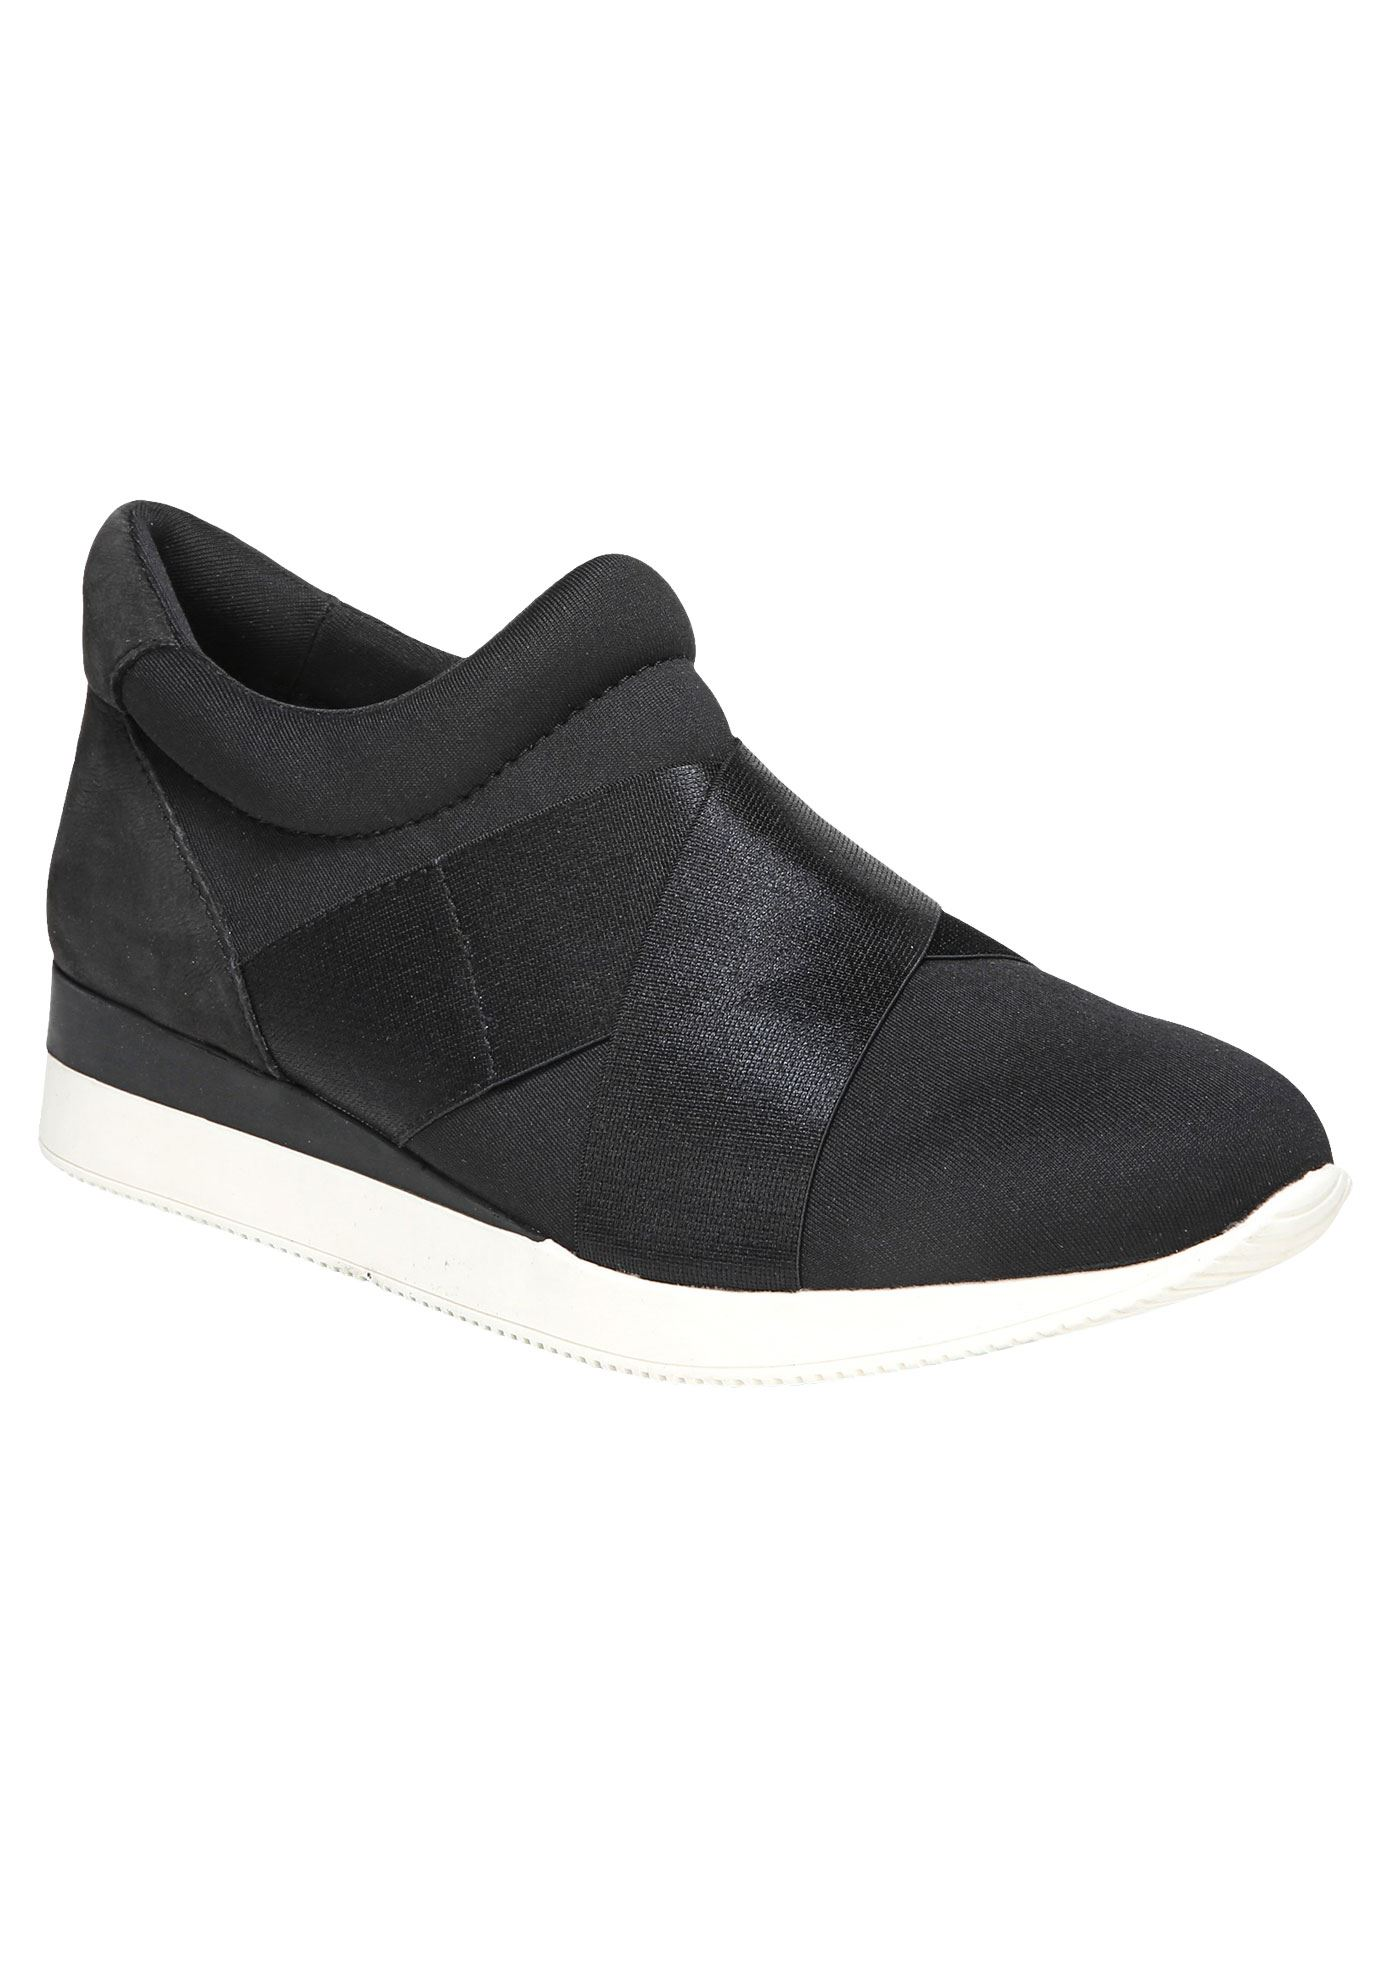 Joni Sneakers by Naturalizer®, BLACK, hi-res